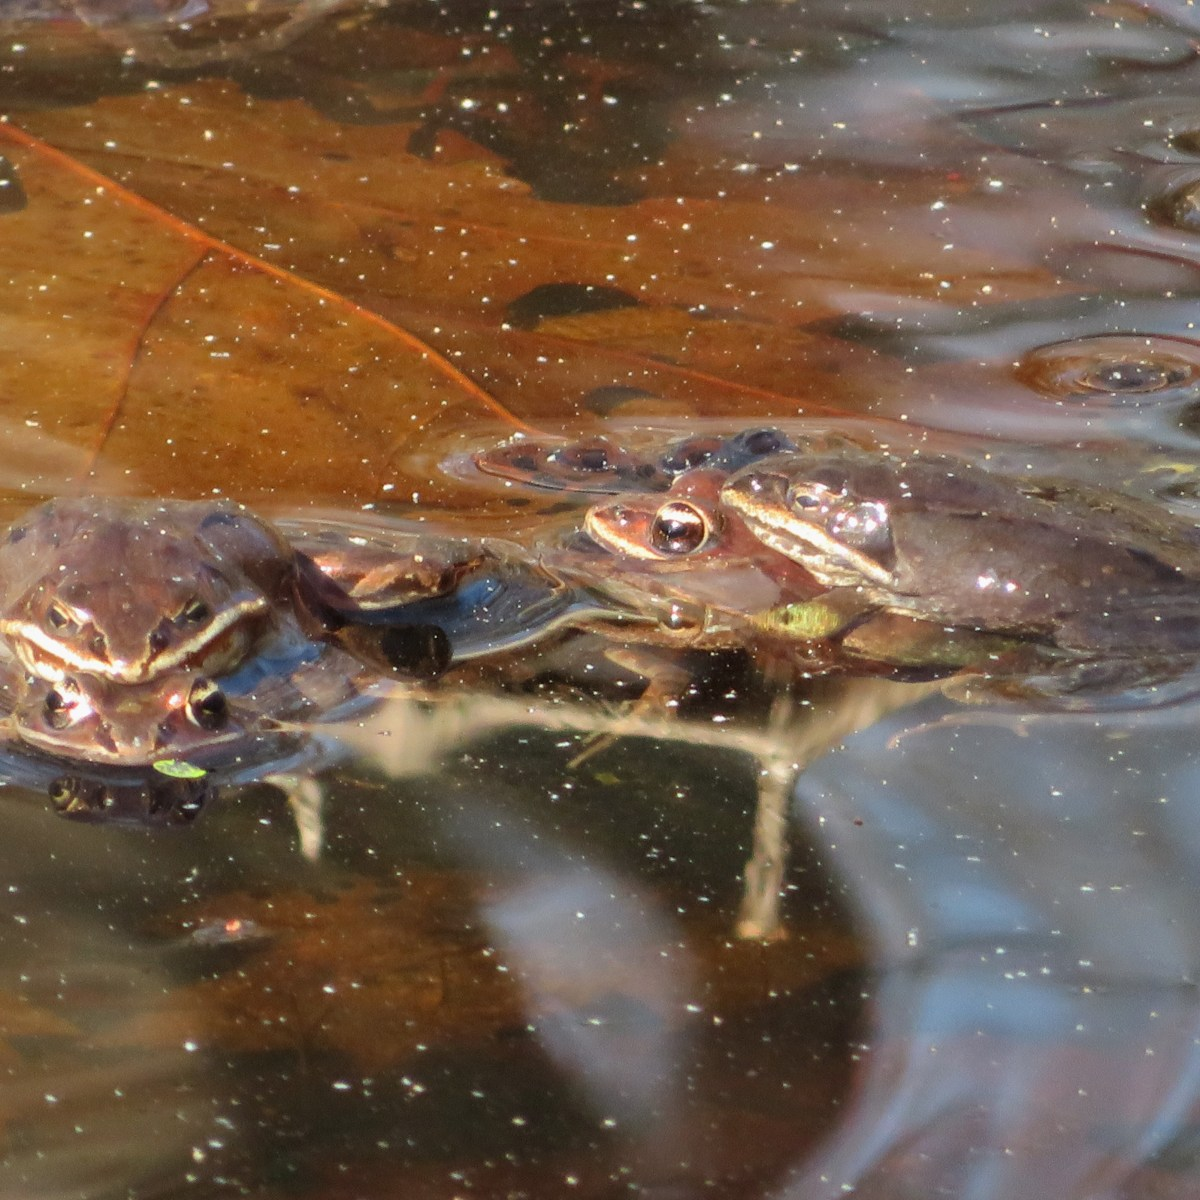 Wood frogs mating